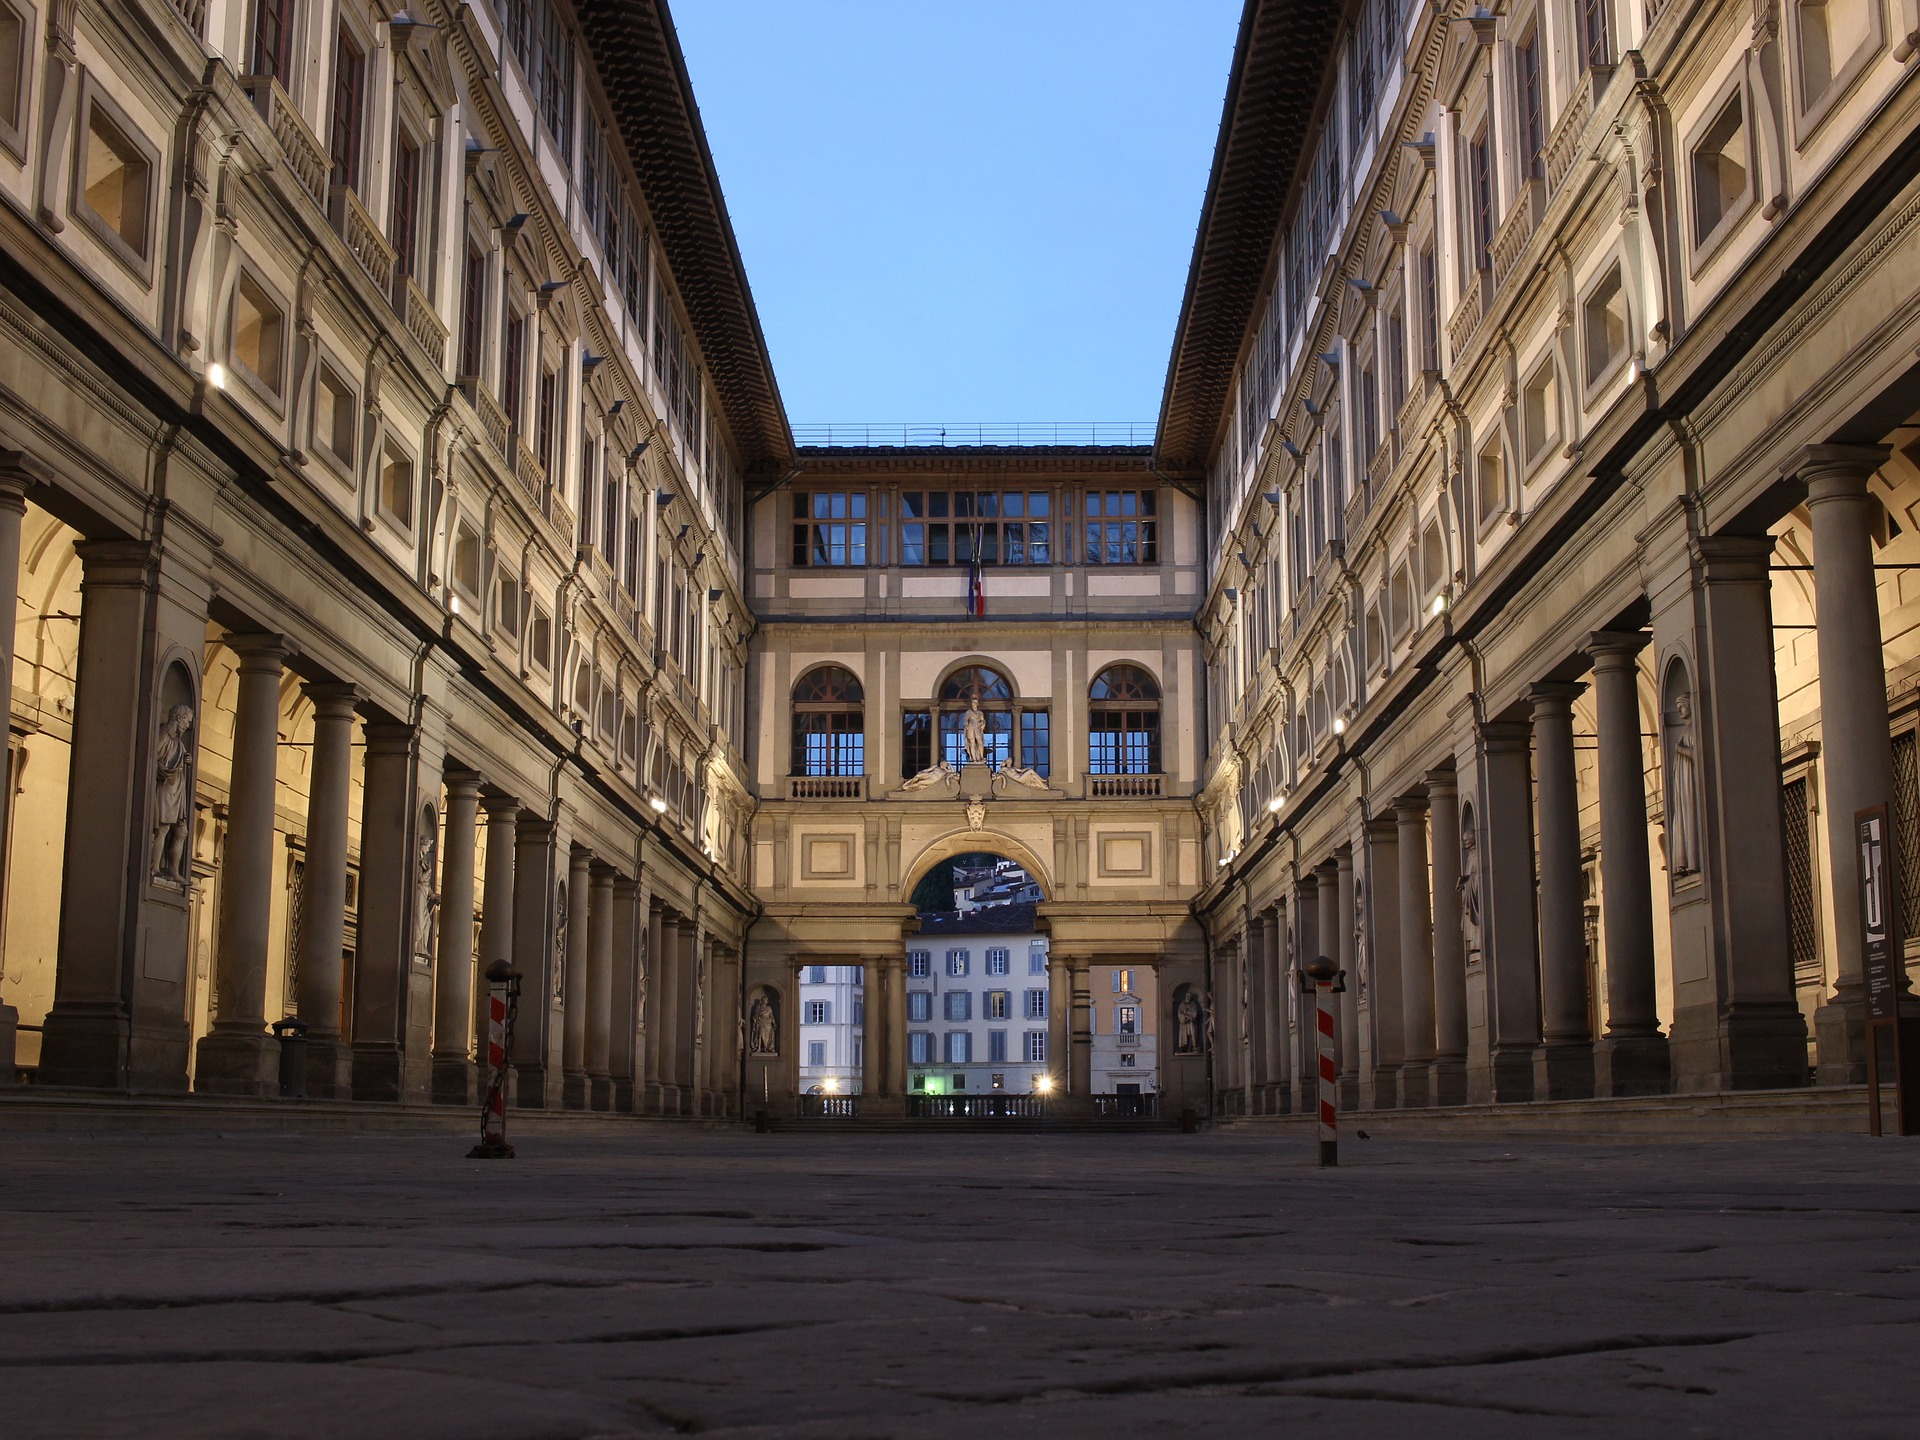 The Uffizi Galleries | Tour Italy Now